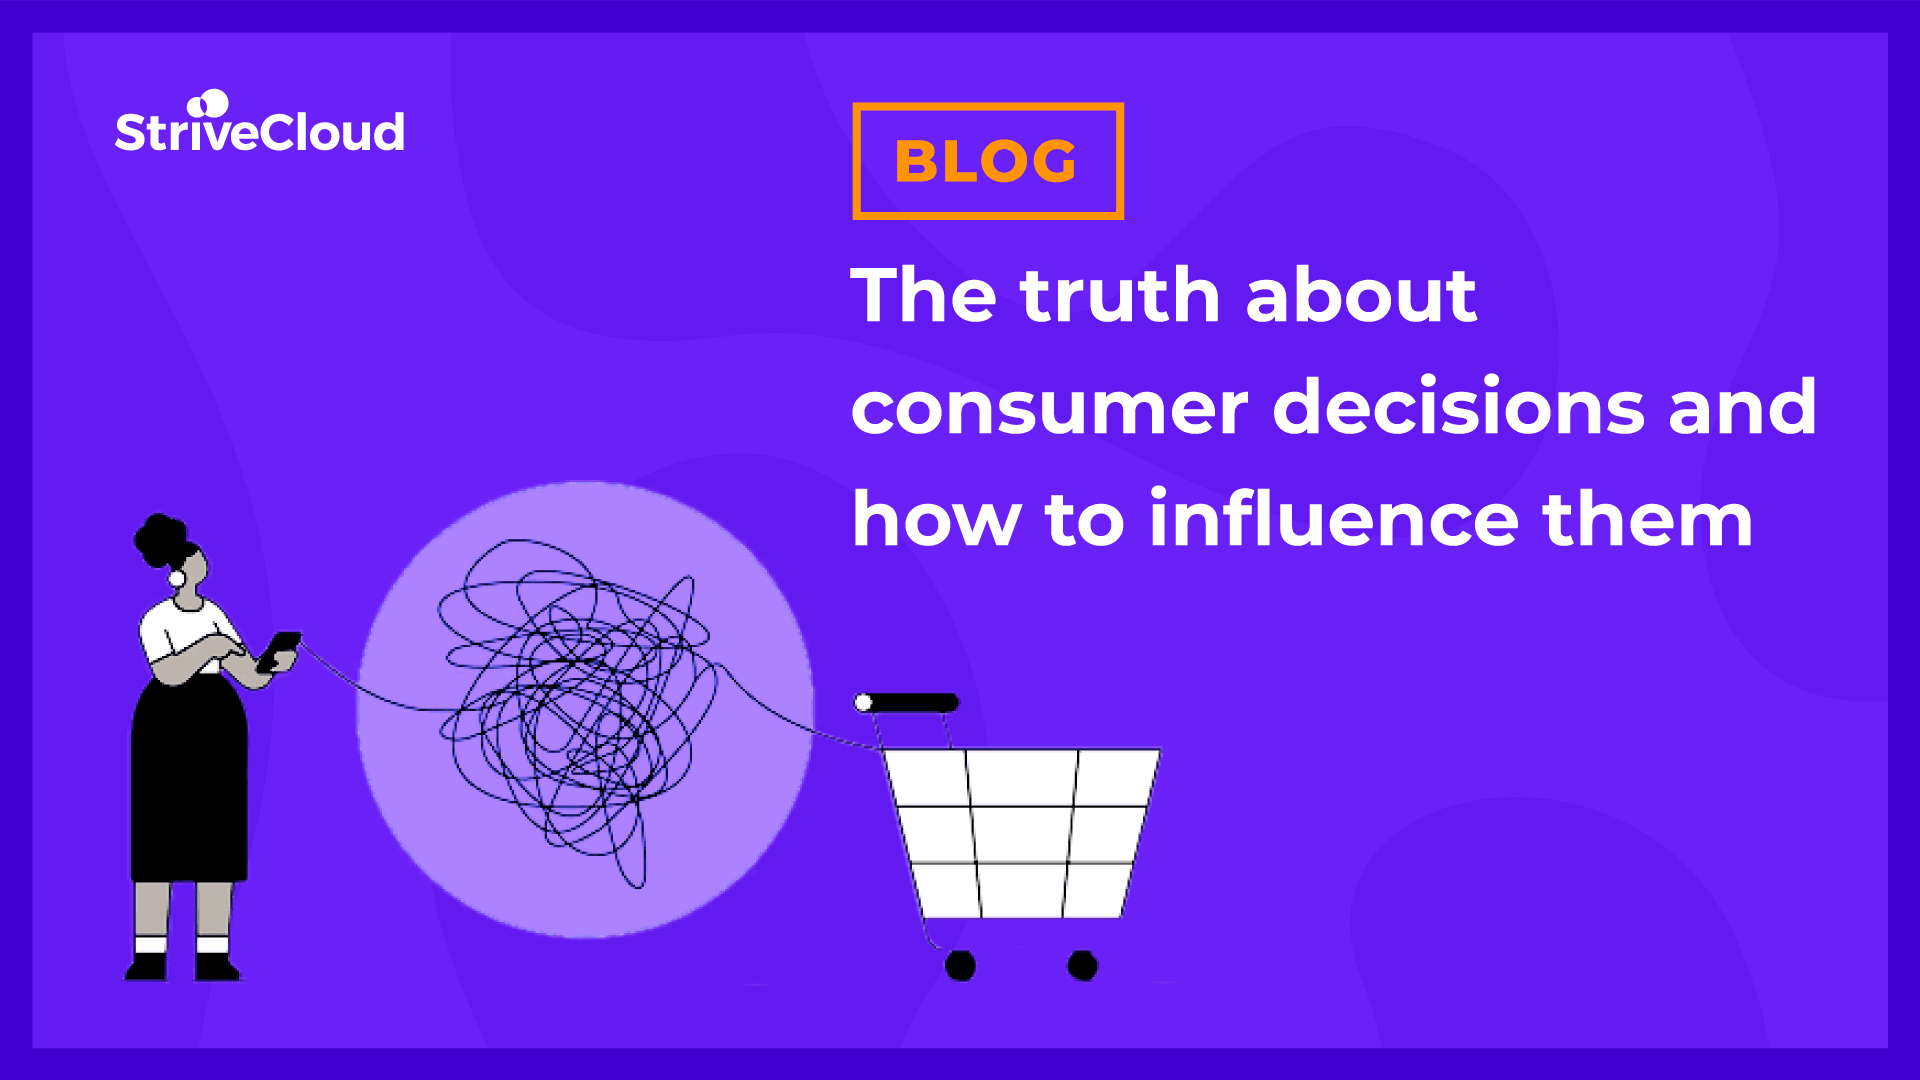 The truth about consumer decisions and how to influence them  💪